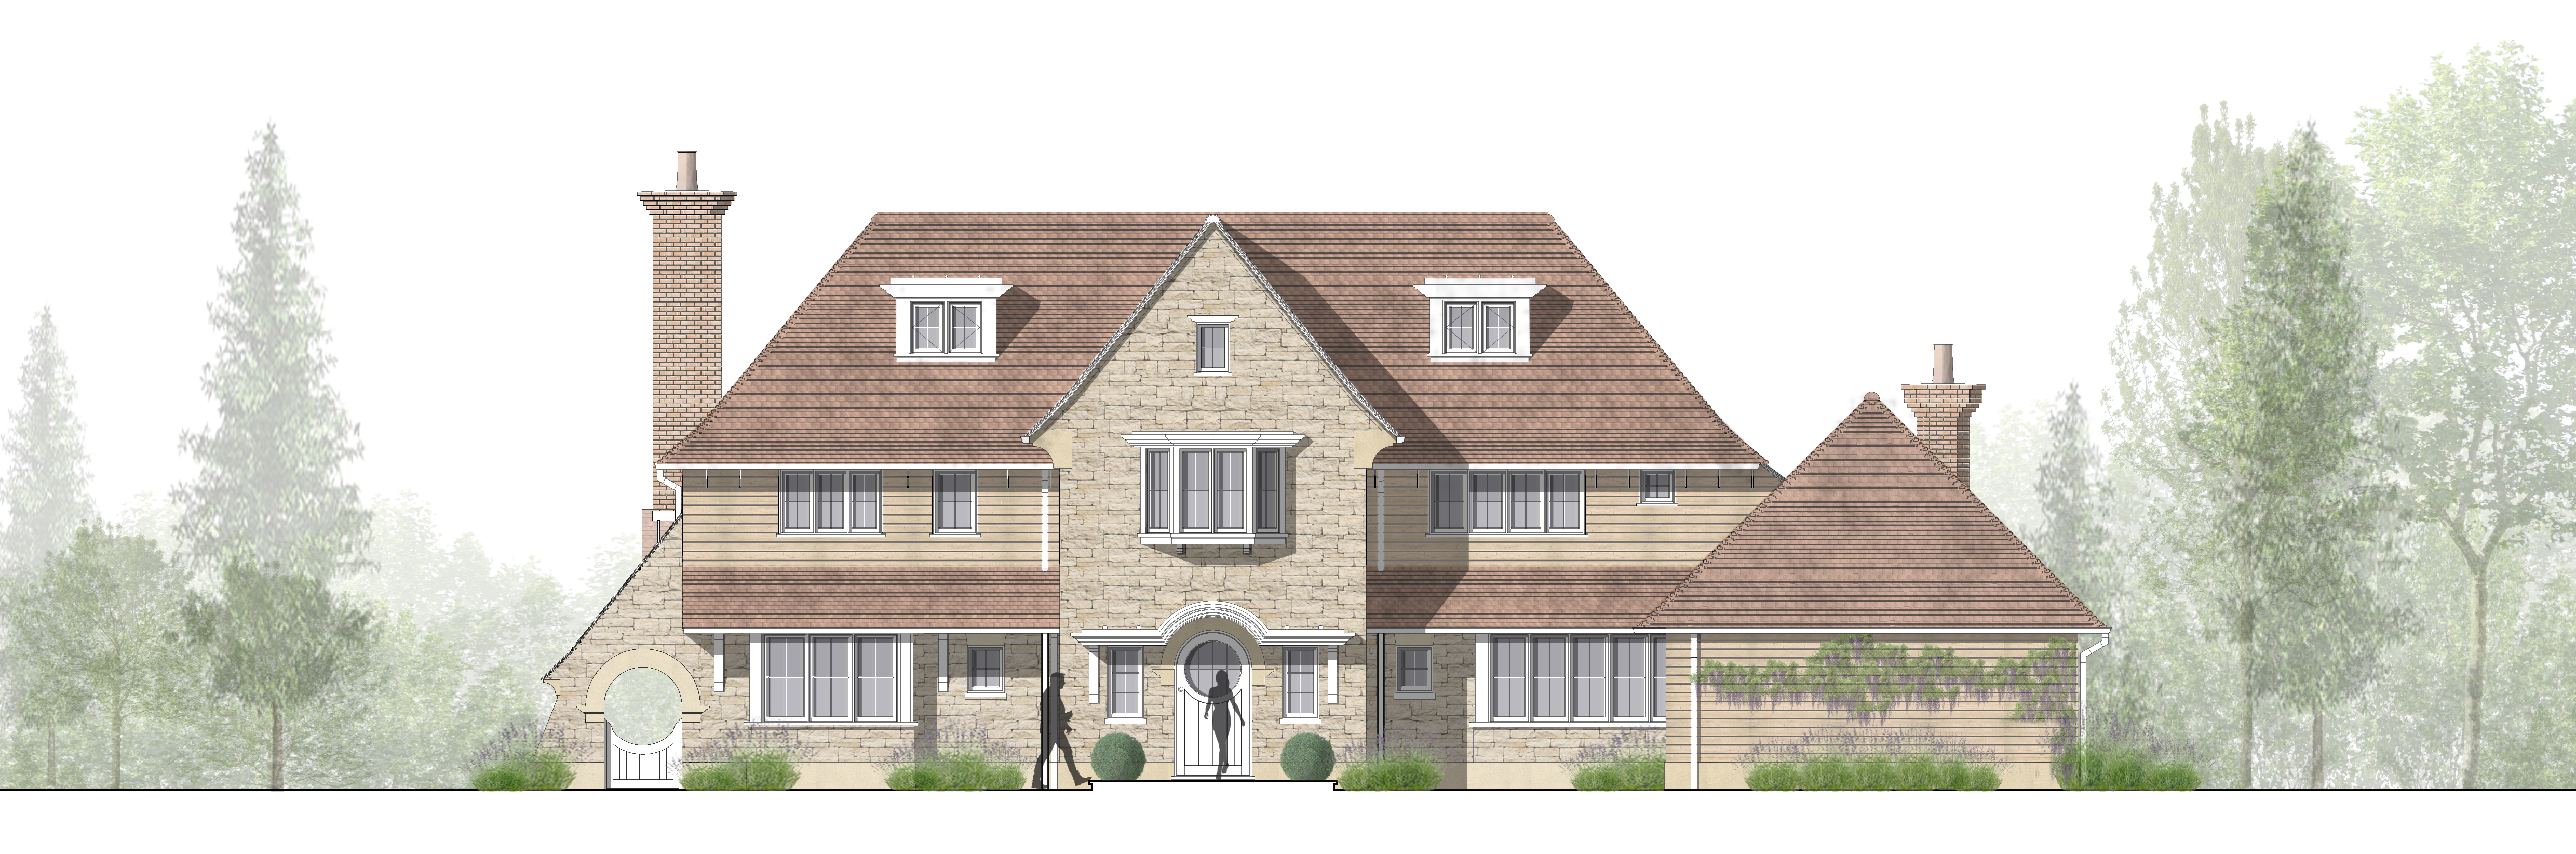 Planning Permission - New Build House - Granted. By Pullen & Wells